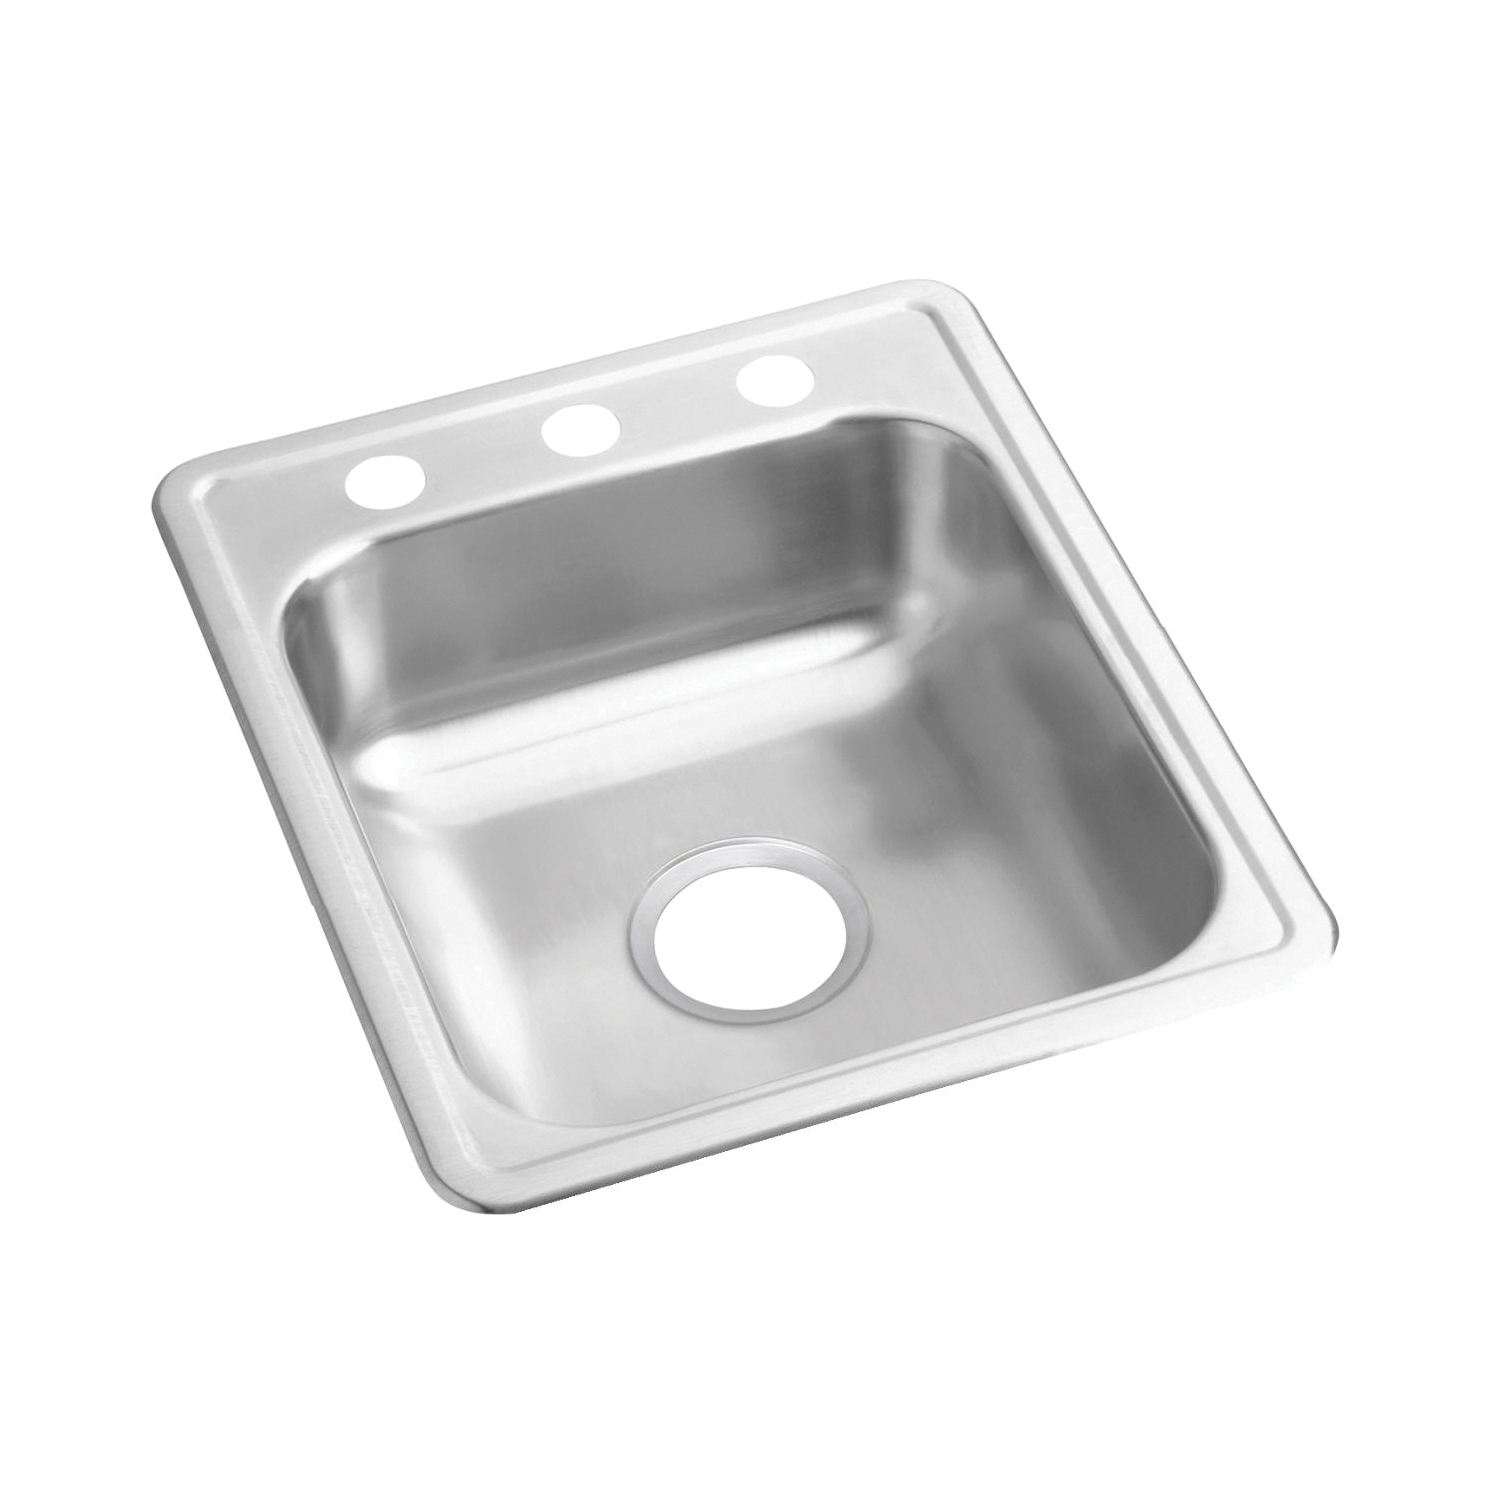 Elkay® D117212 Dayton® Bar Sink, Rectangular, 2 Faucet Holes, 17 in W x 21-1/4 in D x 6-1/2 in H, Top Mount, Stainless Steel, Satin, Domestic